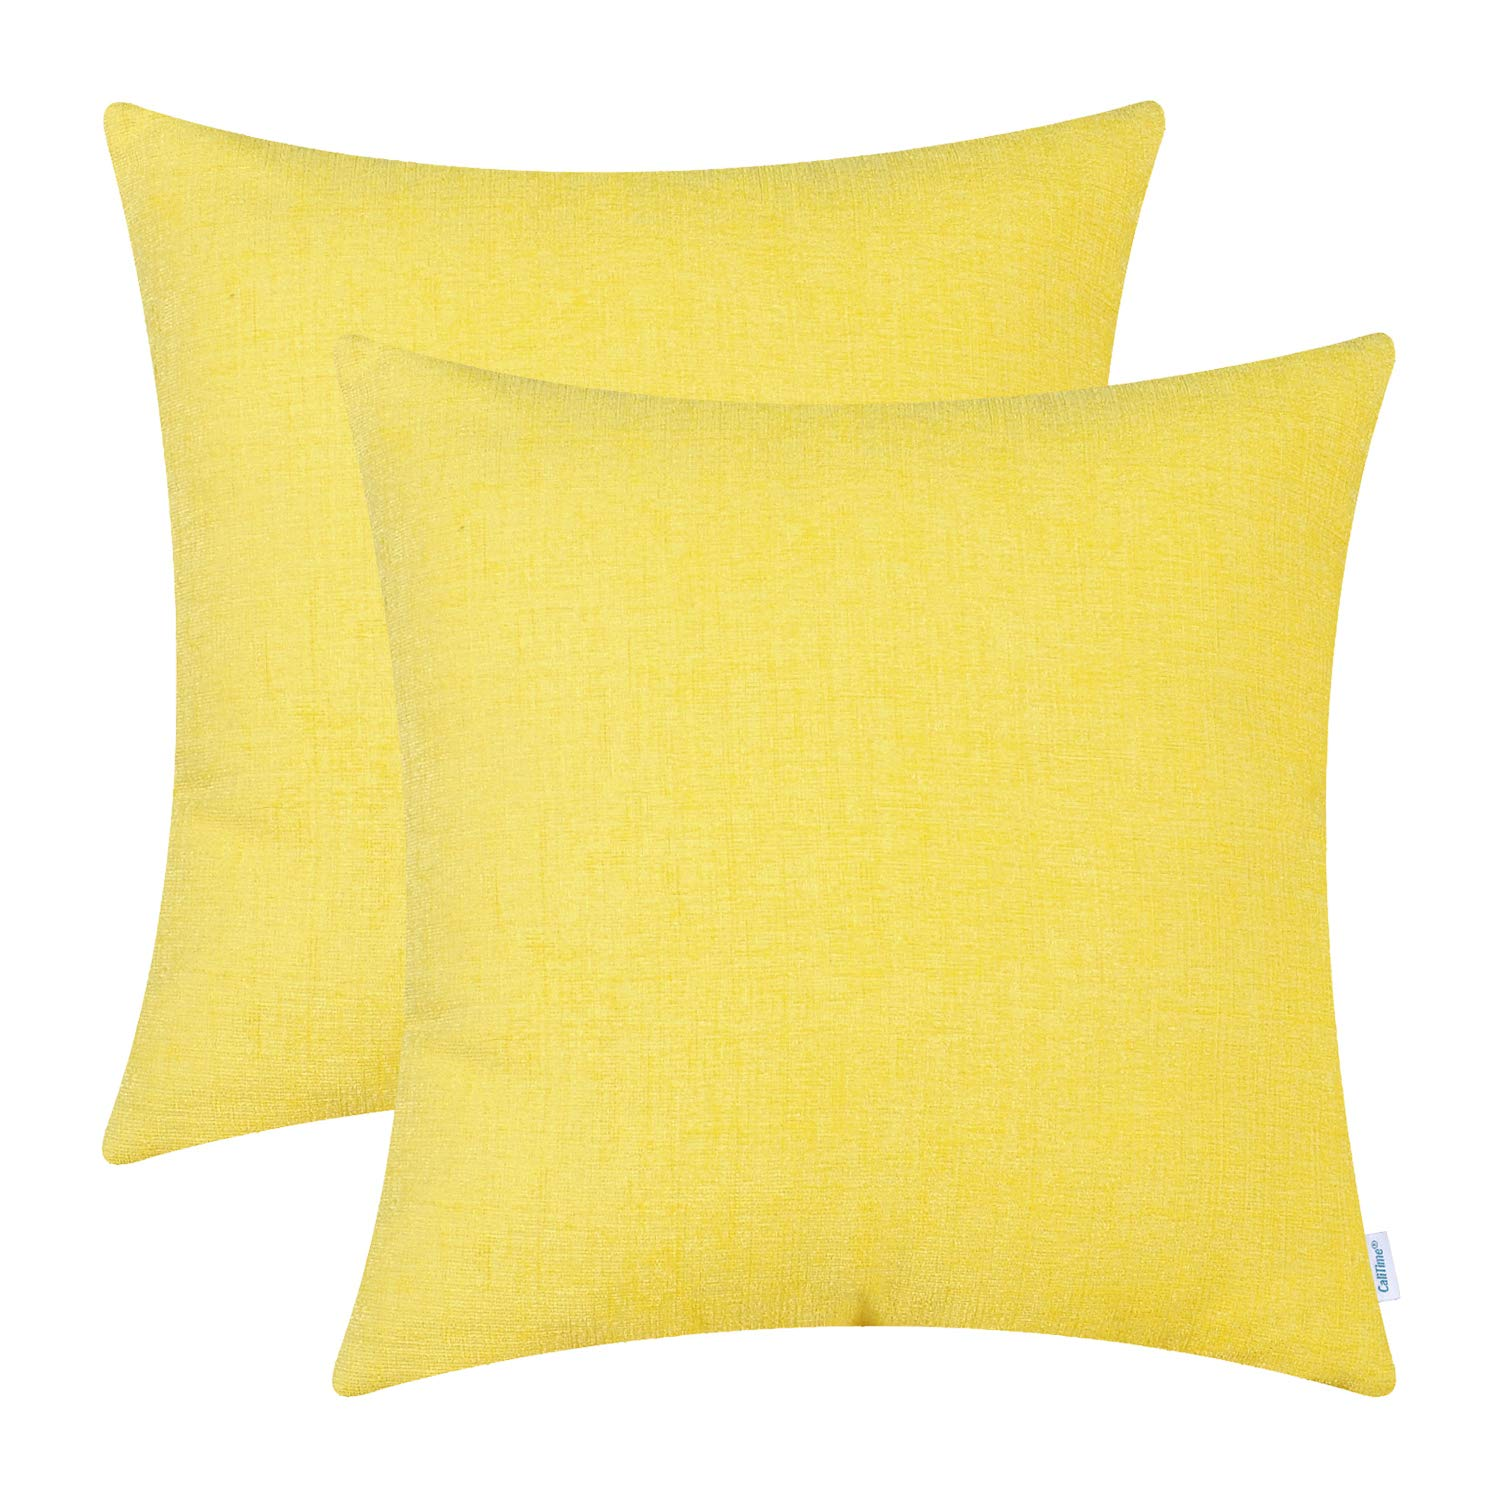 CaliTime Pack of 2 Cozy Throw Pillow Covers Cases for Couch Sofa Home Decoration Solid Dyed Soft Chenille 18 X 18 Inches Bright Yellow